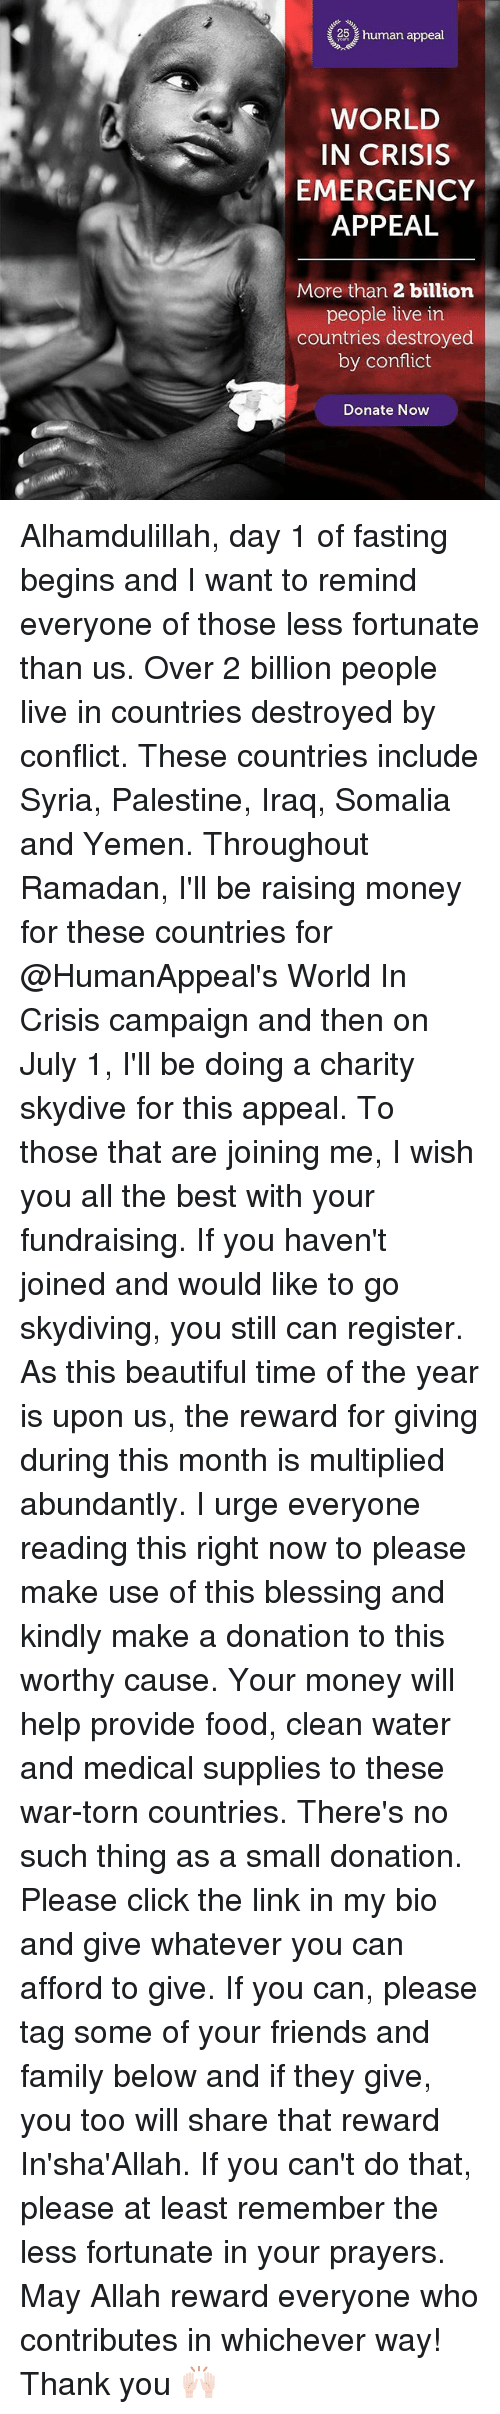 skydive: (28 human appeal  WORLD  IN CRISIS  EMERGENCY  APPEAL  More than 2 billion  people live in  countries destroyed  by conflict  Donate Now Alhamdulillah, day 1 of fasting begins and I want to remind everyone of those less fortunate than us. Over 2 billion people live in countries destroyed by conflict. These countries include Syria, Palestine, Iraq, Somalia and Yemen. Throughout Ramadan, I'll be raising money for these countries for @HumanAppeal's World In Crisis campaign and then on July 1, I'll be doing a charity skydive for this appeal. To those that are joining me, I wish you all the best with your fundraising. If you haven't joined and would like to go skydiving, you still can register. As this beautiful time of the year is upon us, the reward for giving during this month is multiplied abundantly. I urge everyone reading this right now to please make use of this blessing and kindly make a donation to this worthy cause. Your money will help provide food, clean water and medical supplies to these war-torn countries. There's no such thing as a small donation. Please click the link in my bio and give whatever you can afford to give. If you can, please tag some of your friends and family below and if they give, you too will share that reward In'sha'Allah. If you can't do that, please at least remember the less fortunate in your prayers. May Allah reward everyone who contributes in whichever way! Thank you 🙌🏻